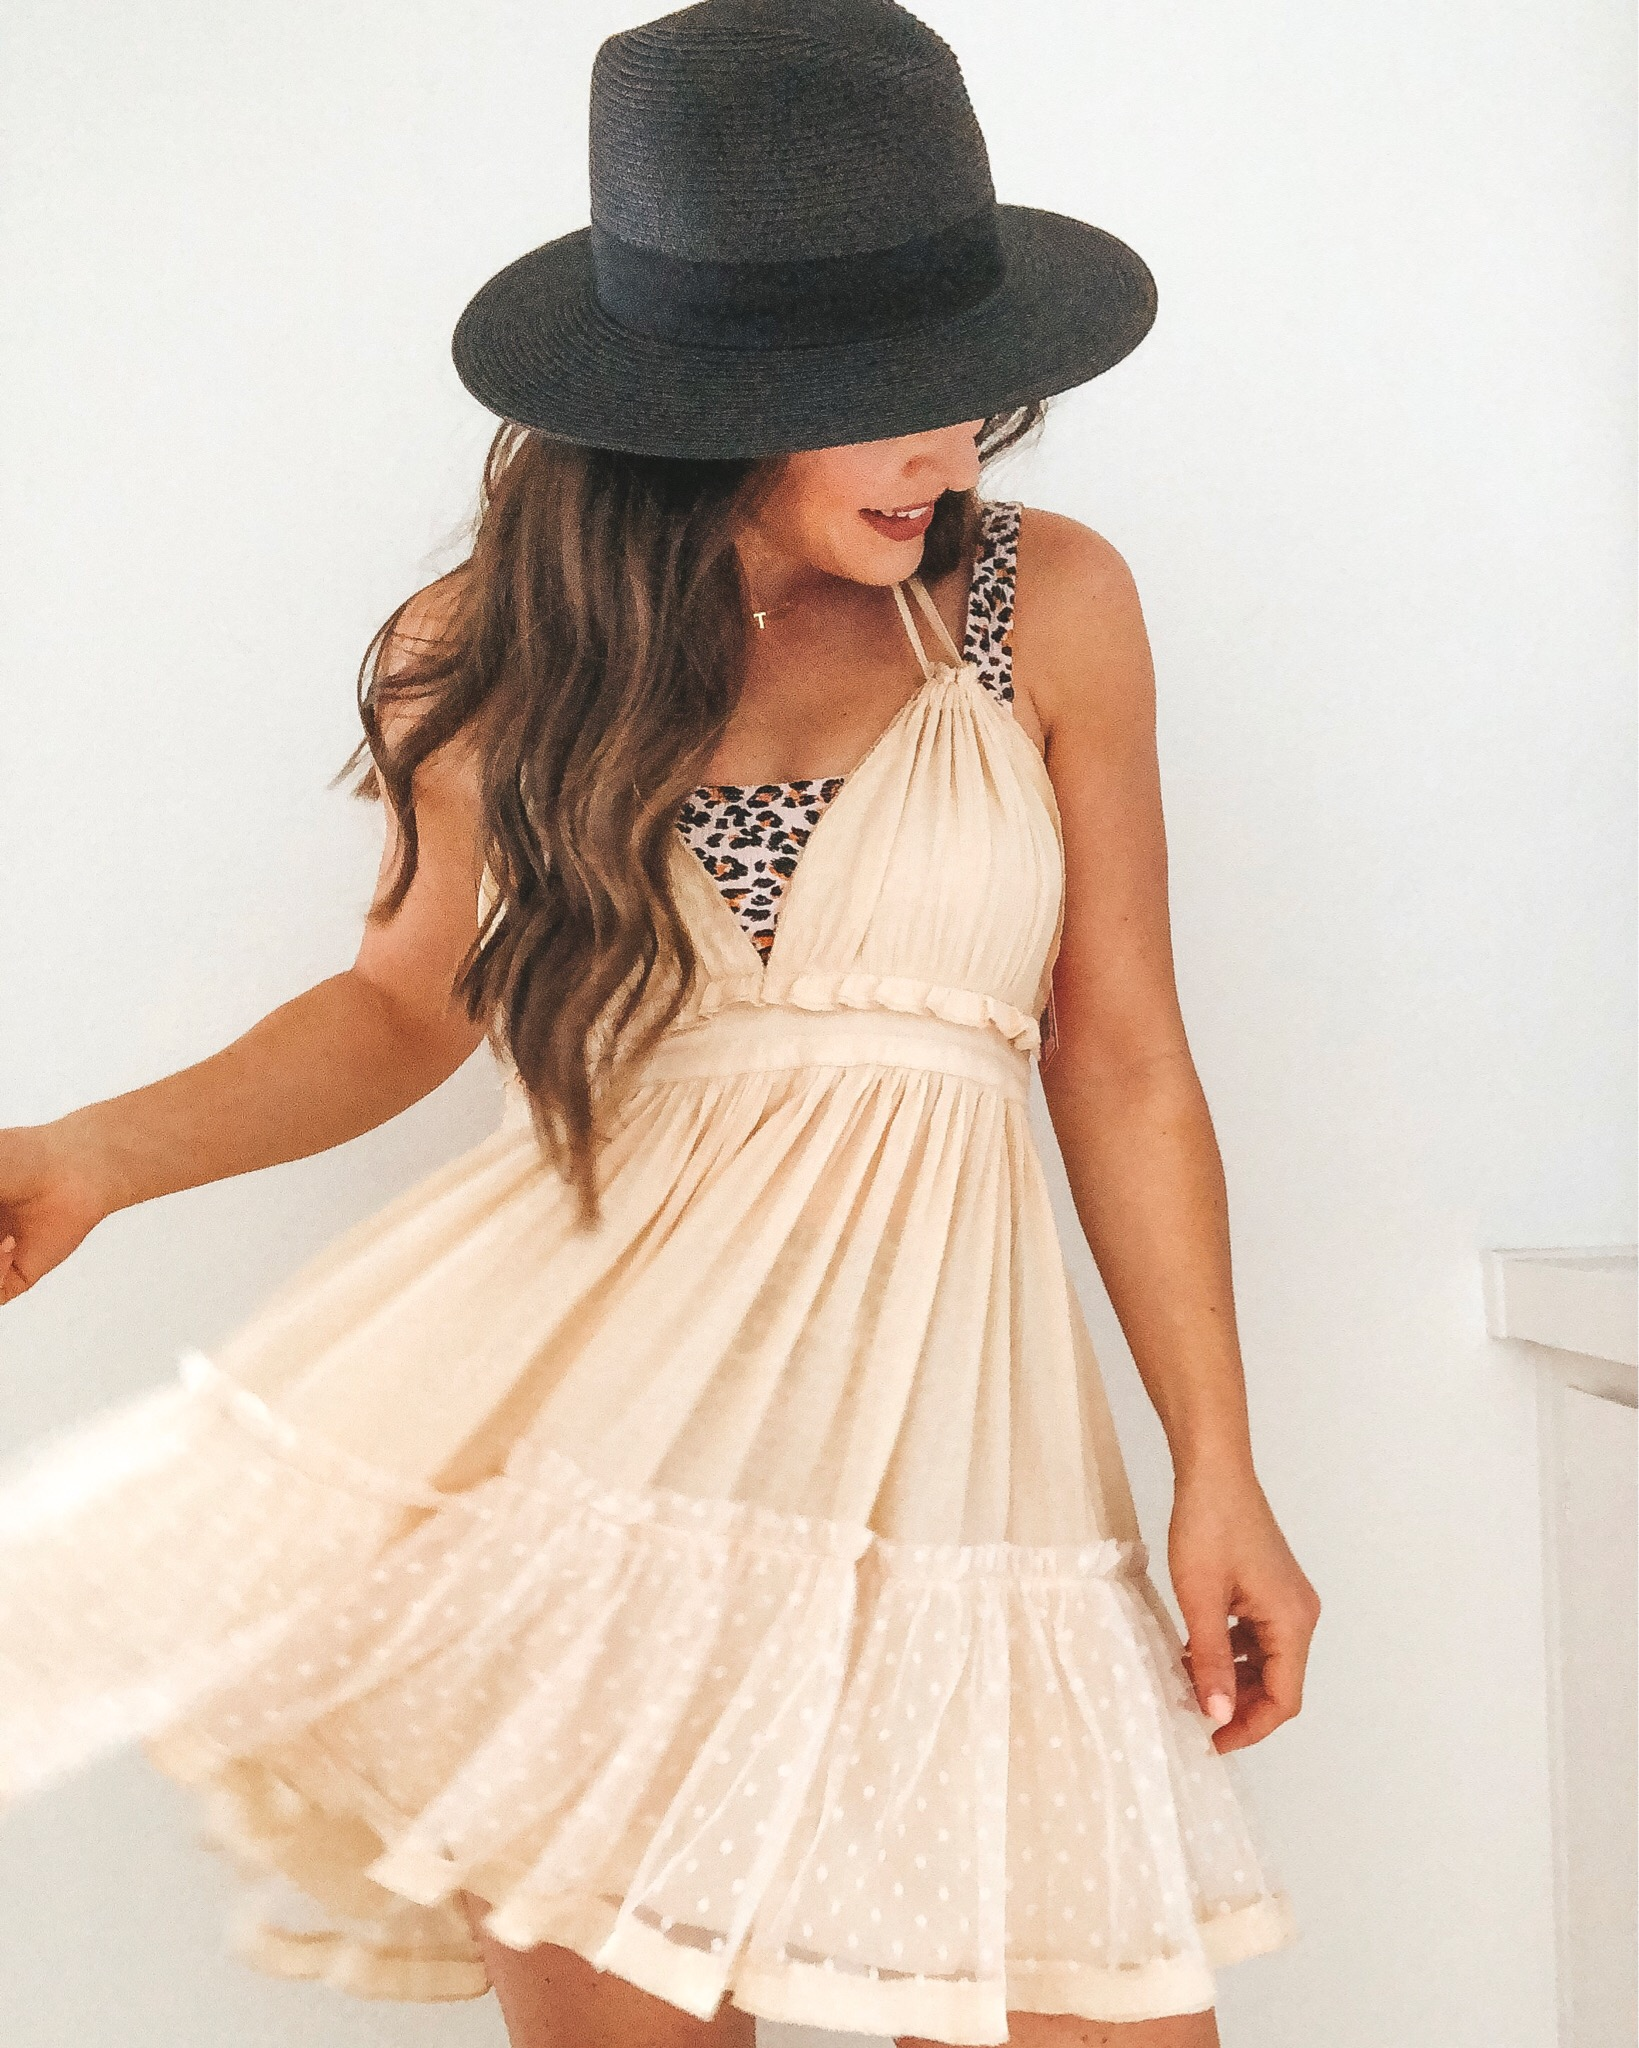 Amazon fashion finds for summer.  10 under $35 amazon women's clothing pieces.  Ivory Free people inspired dress or beach coverup.